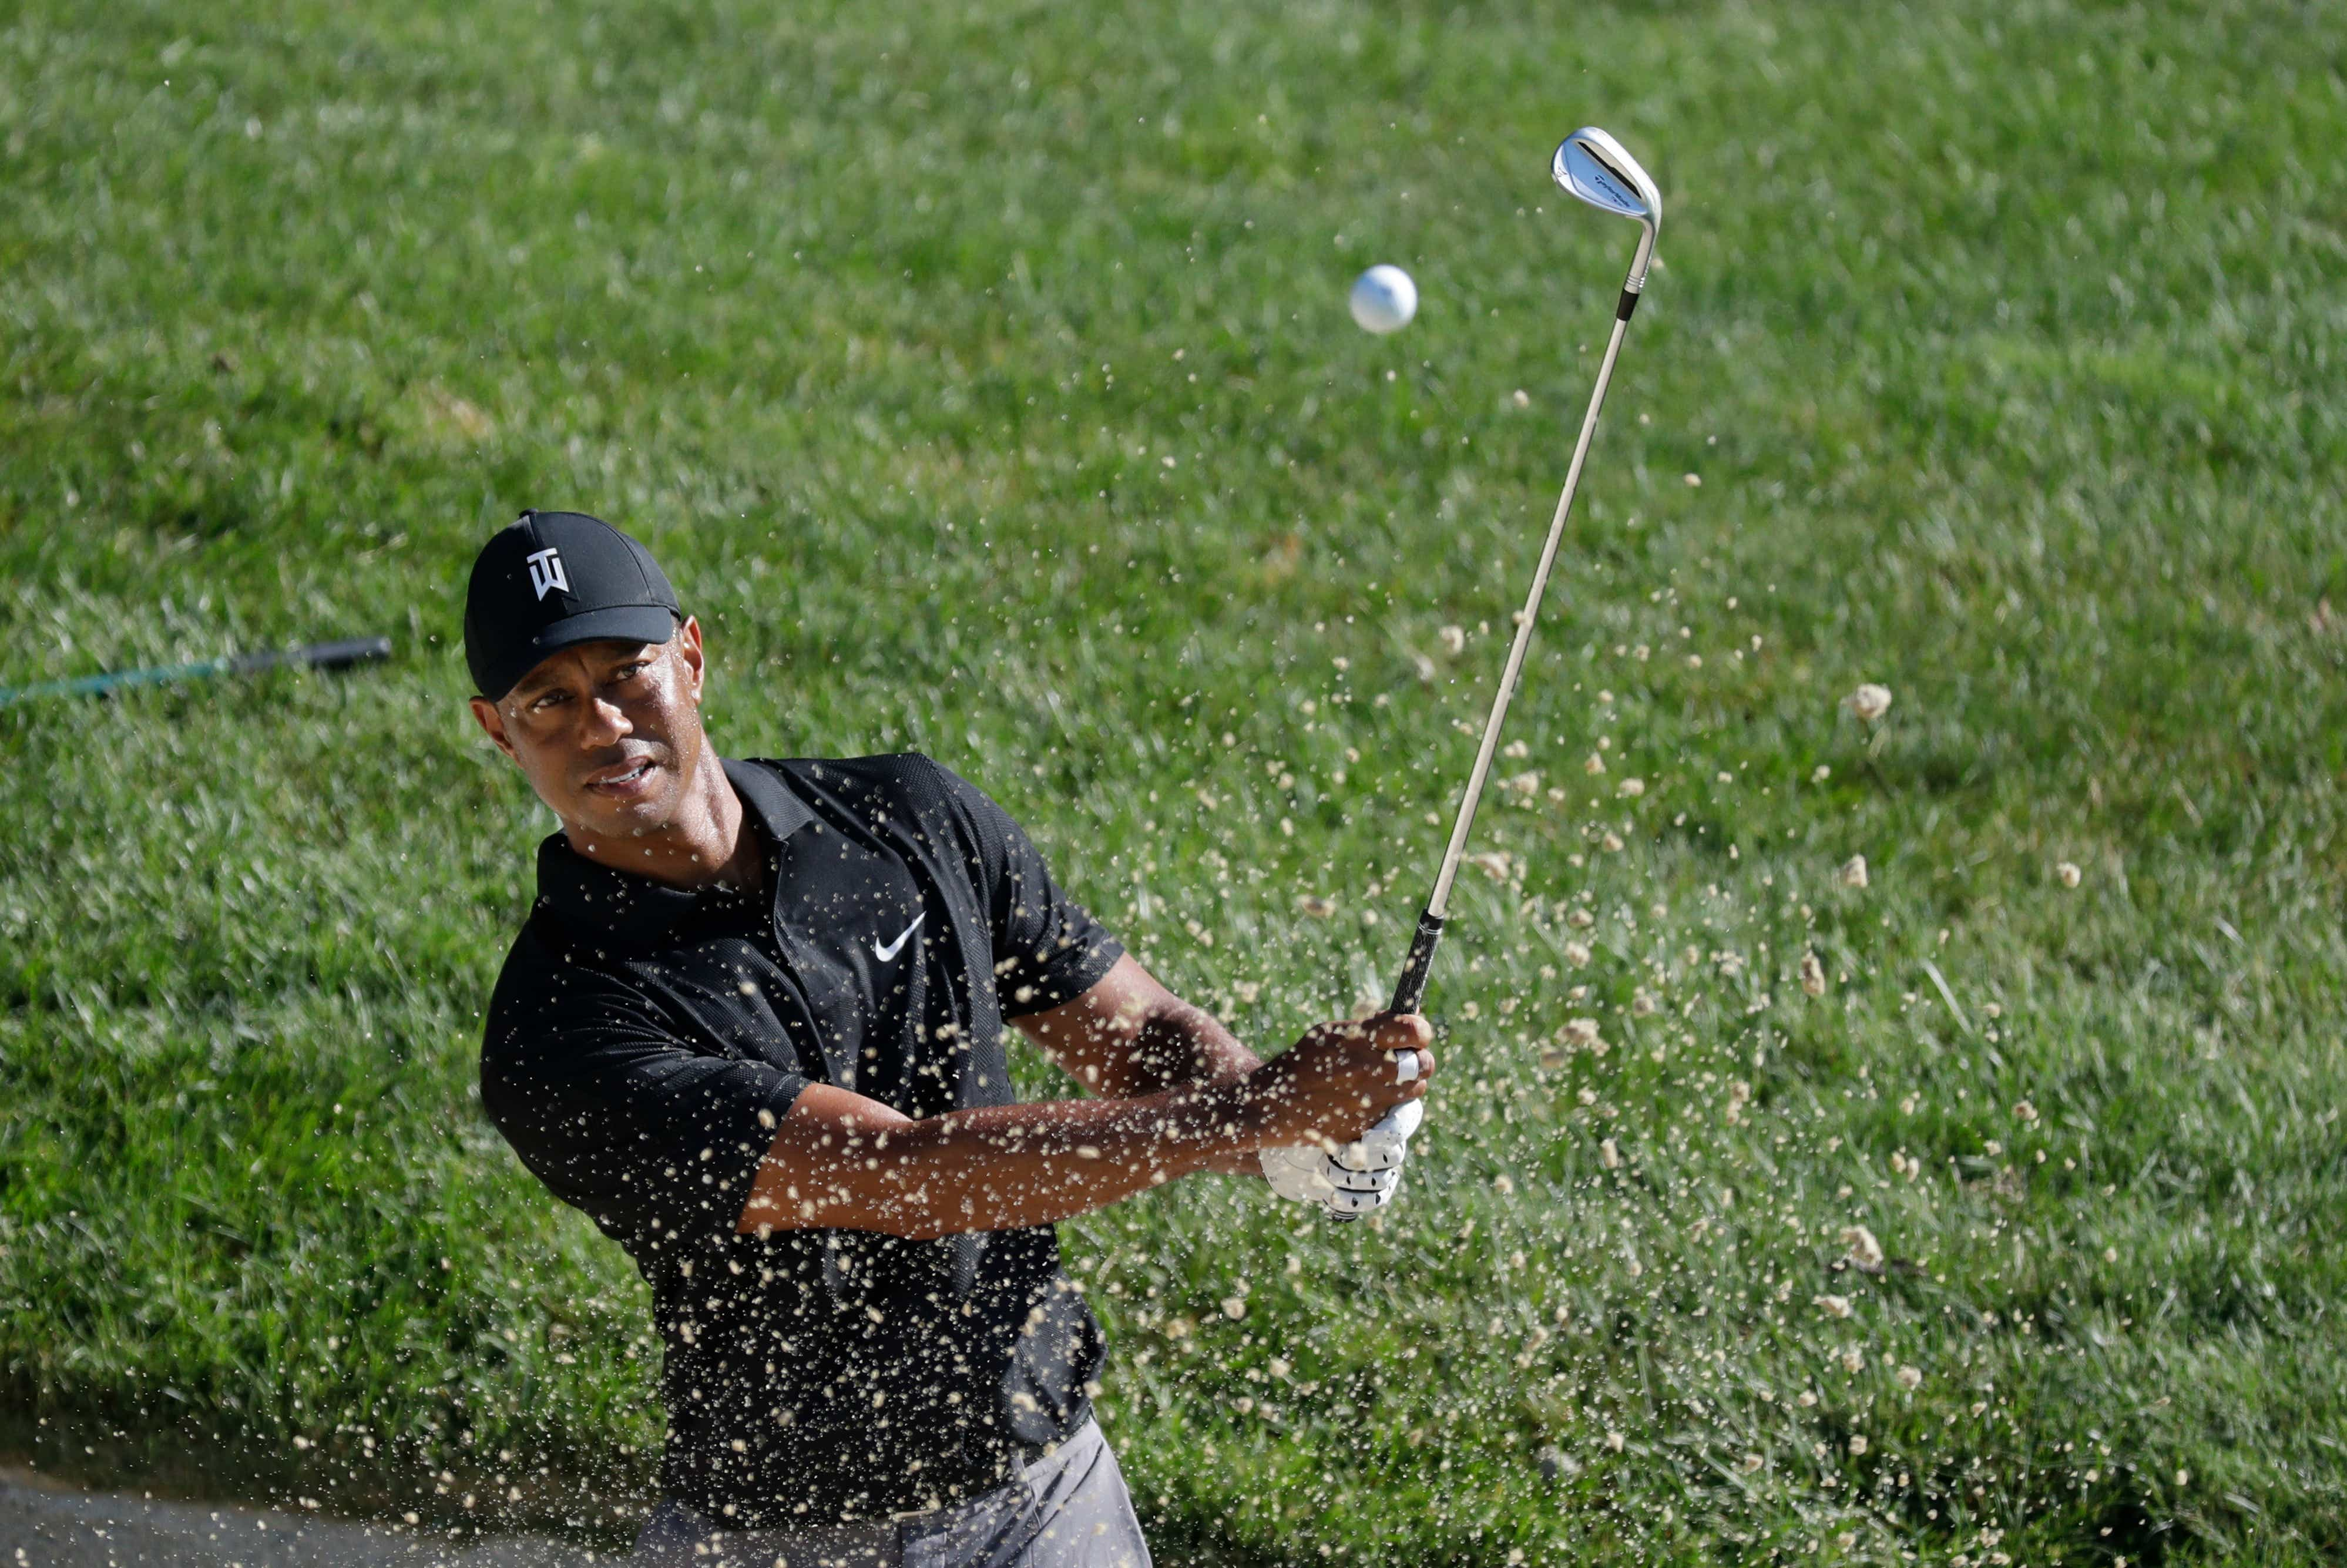 Will Tiger Woods Play At Wgc Fedex St Jude Invitational In Memphis